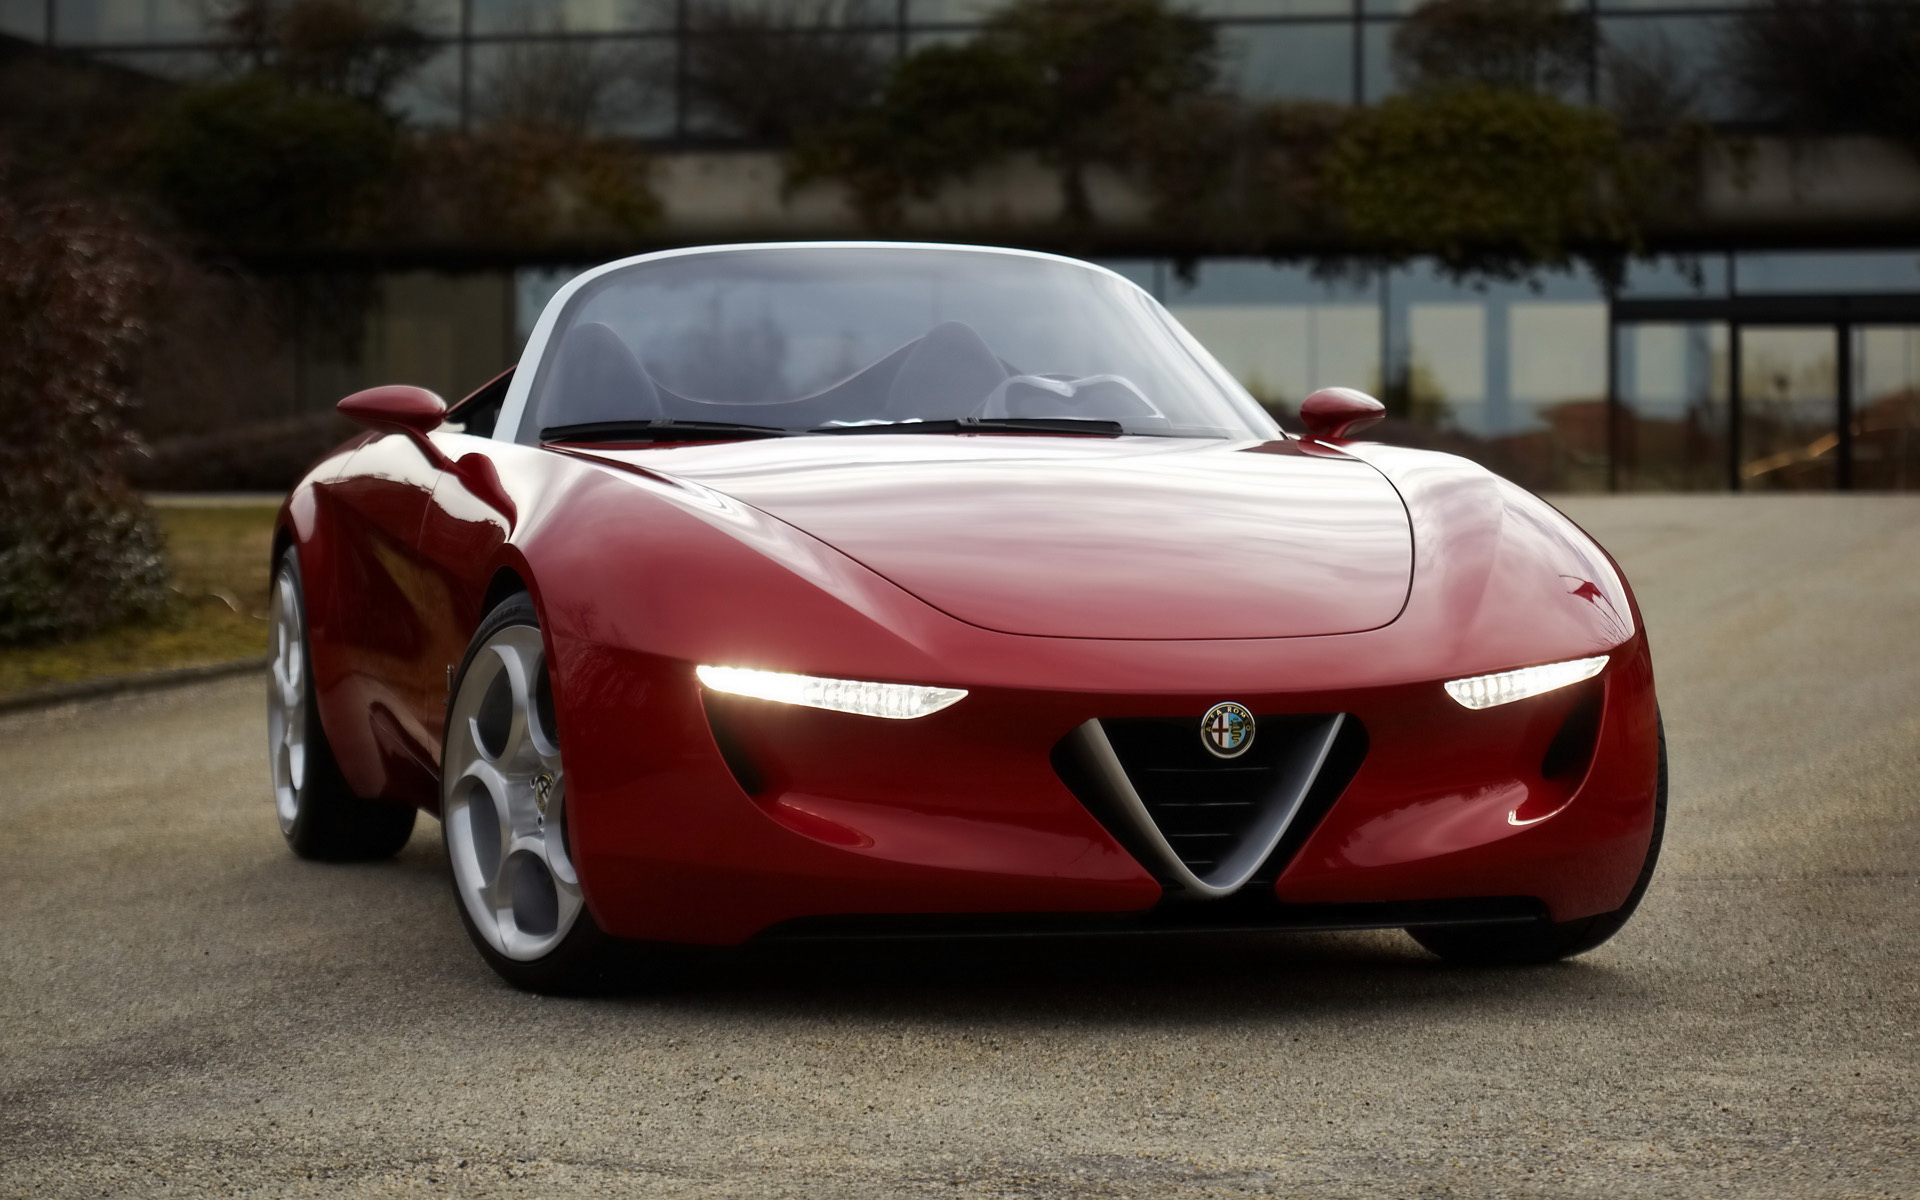 Alfa Romeo Super Car Wallpapers HD Wallpapers 1920x1200